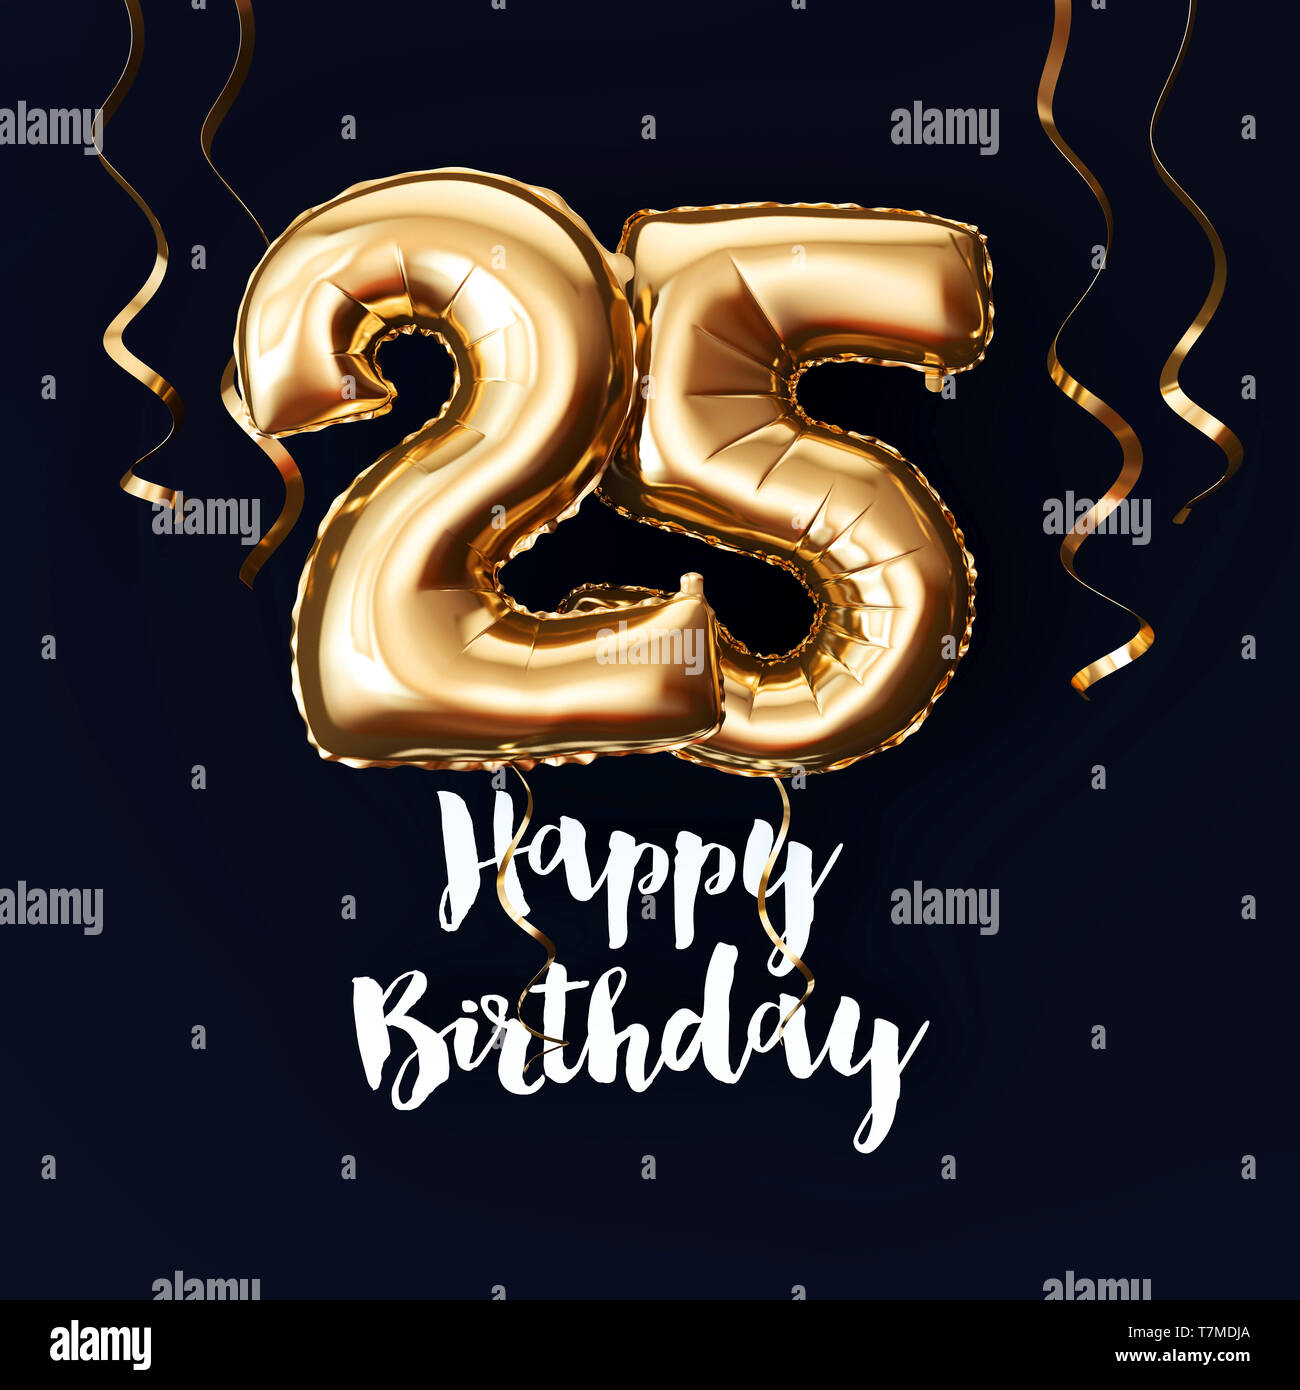 Happy 25th Birthday gold foil balloon background with